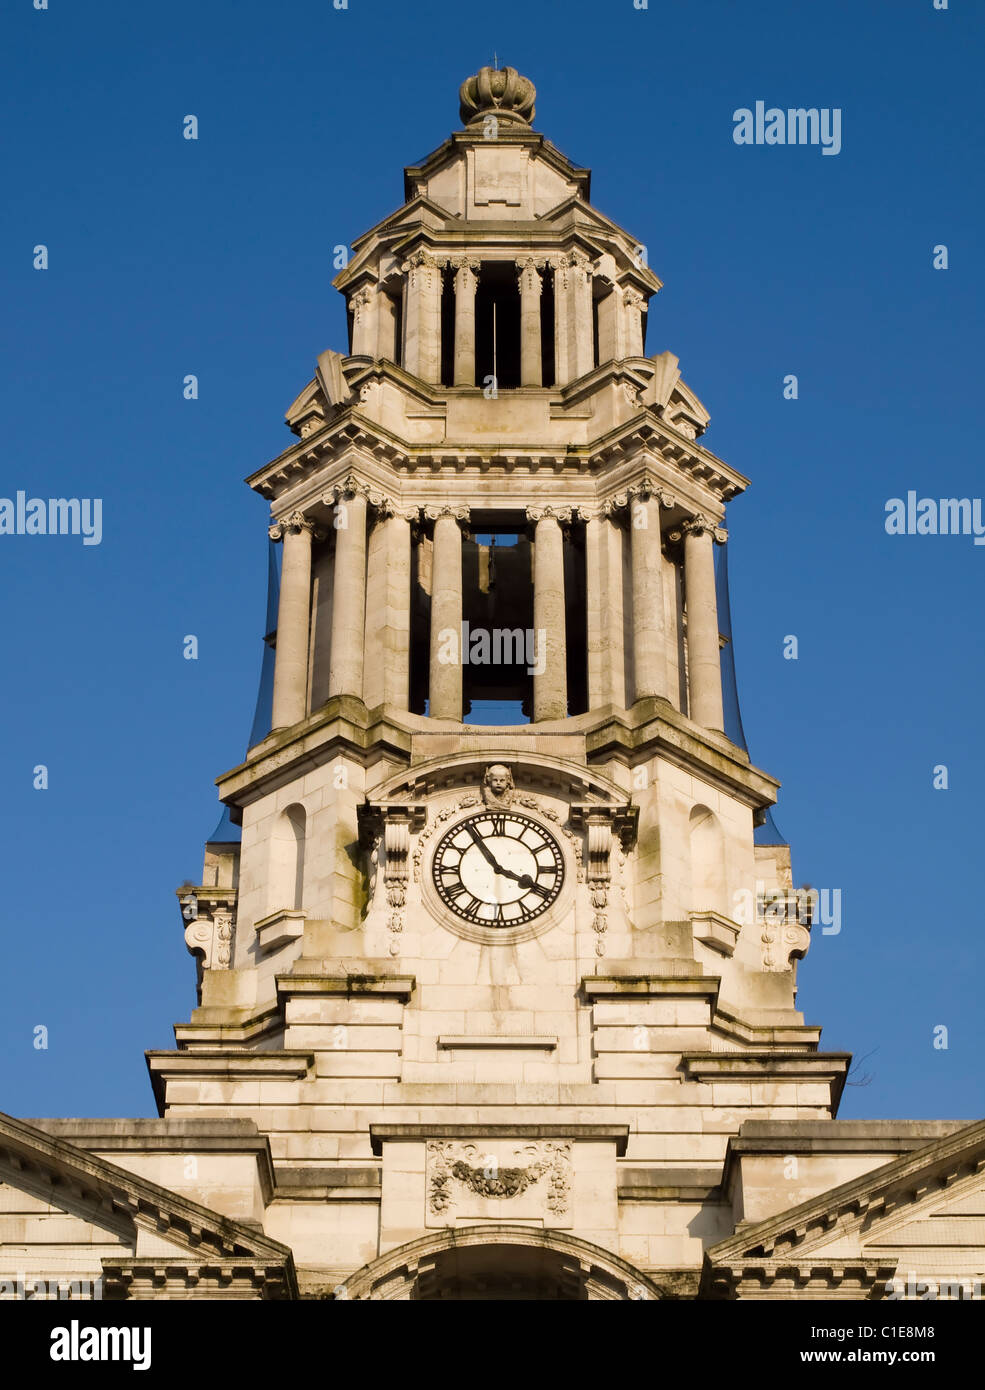 The clock tower of the town hall at Stockport, built in 1908 using white Portland stone, inspired by Christopher - Stock Image